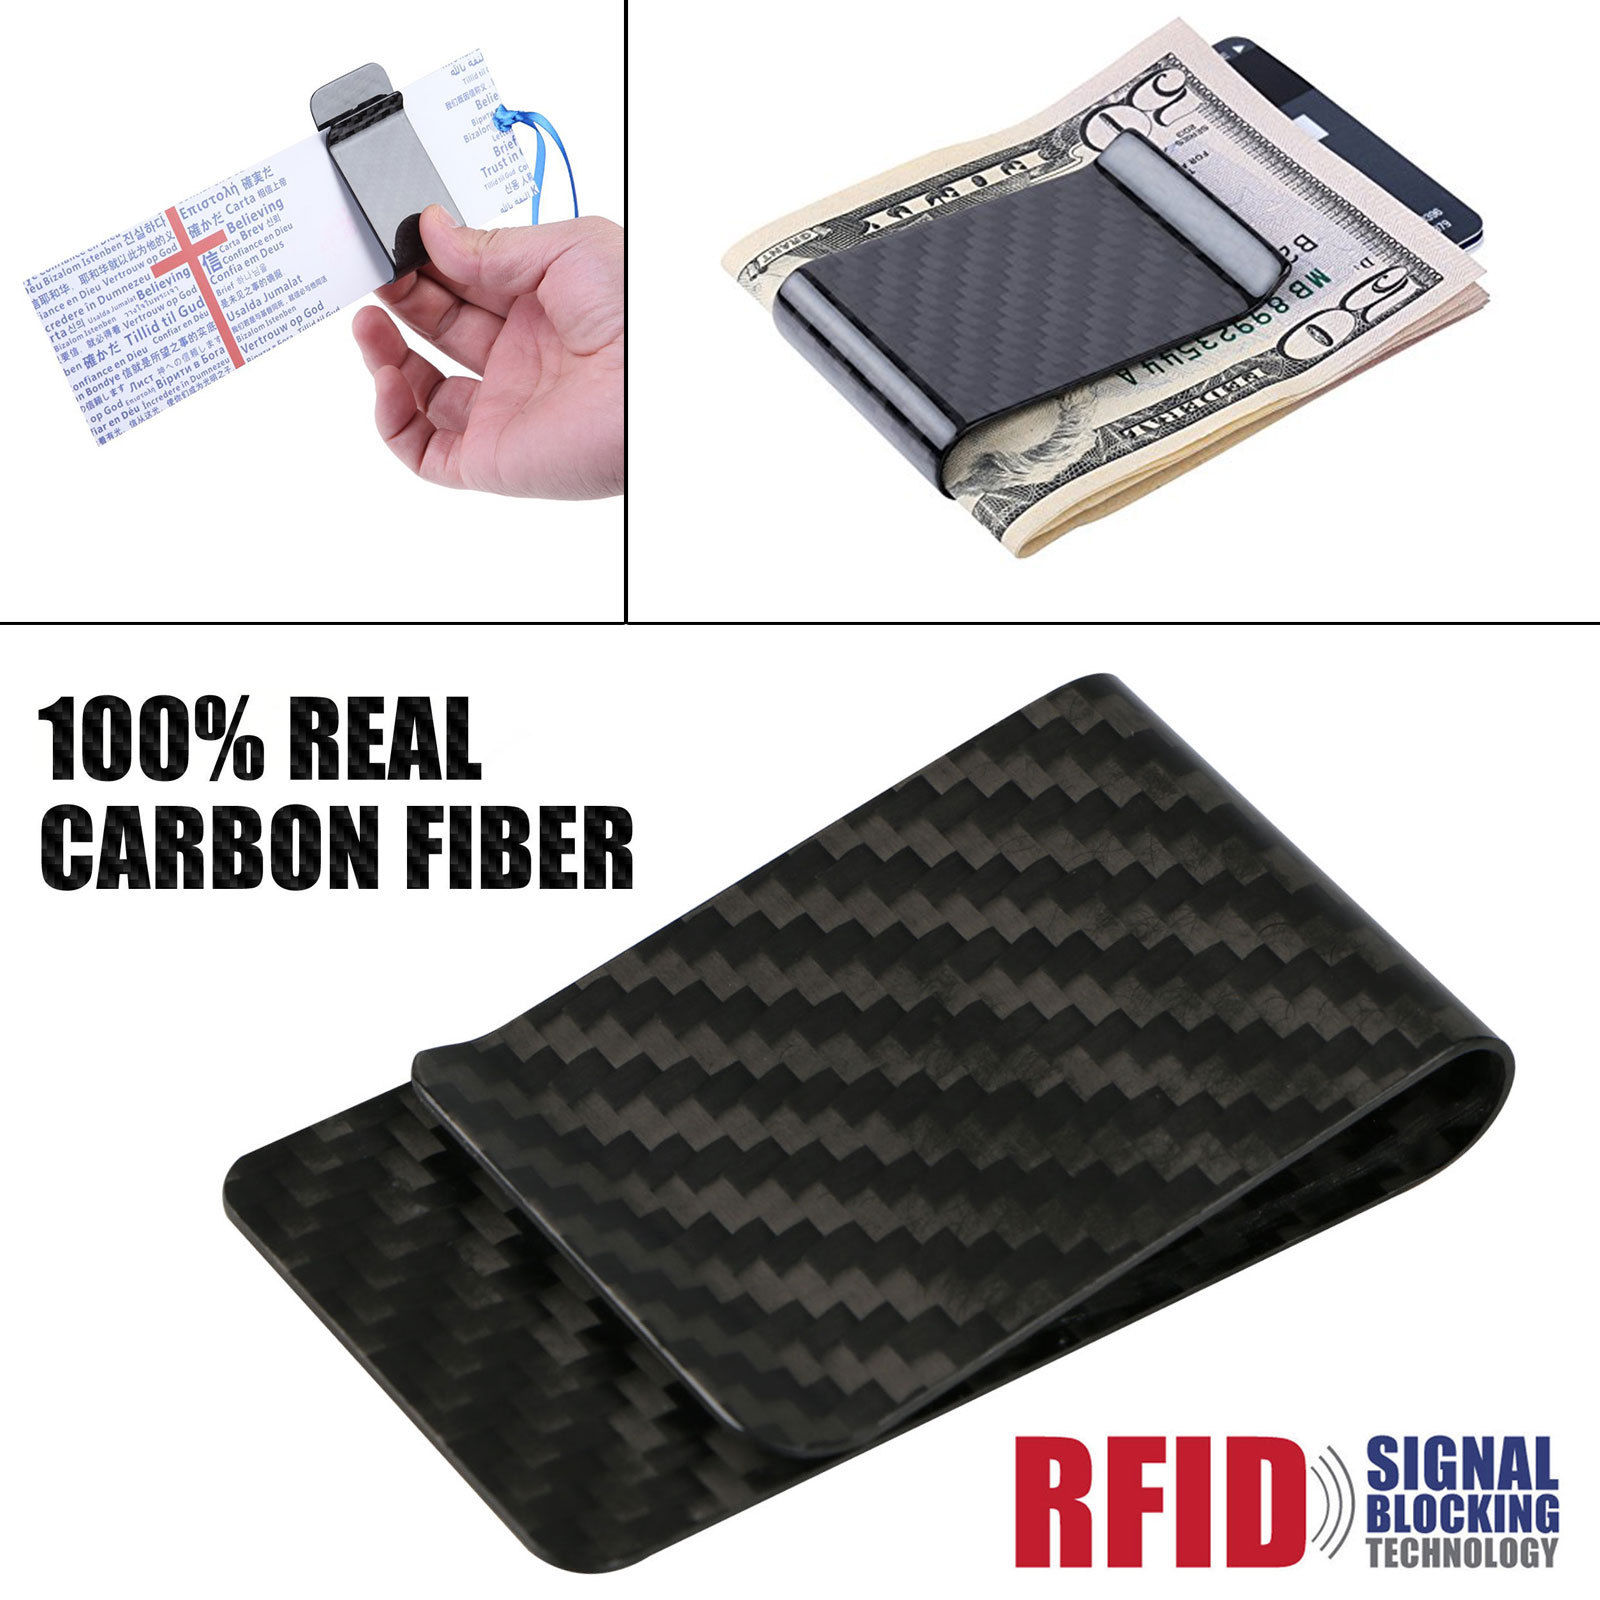 Real carbon fiber money clip safepocket business credit card real carbon fiber money clip safepocket business credit magicingreecefo Choice Image